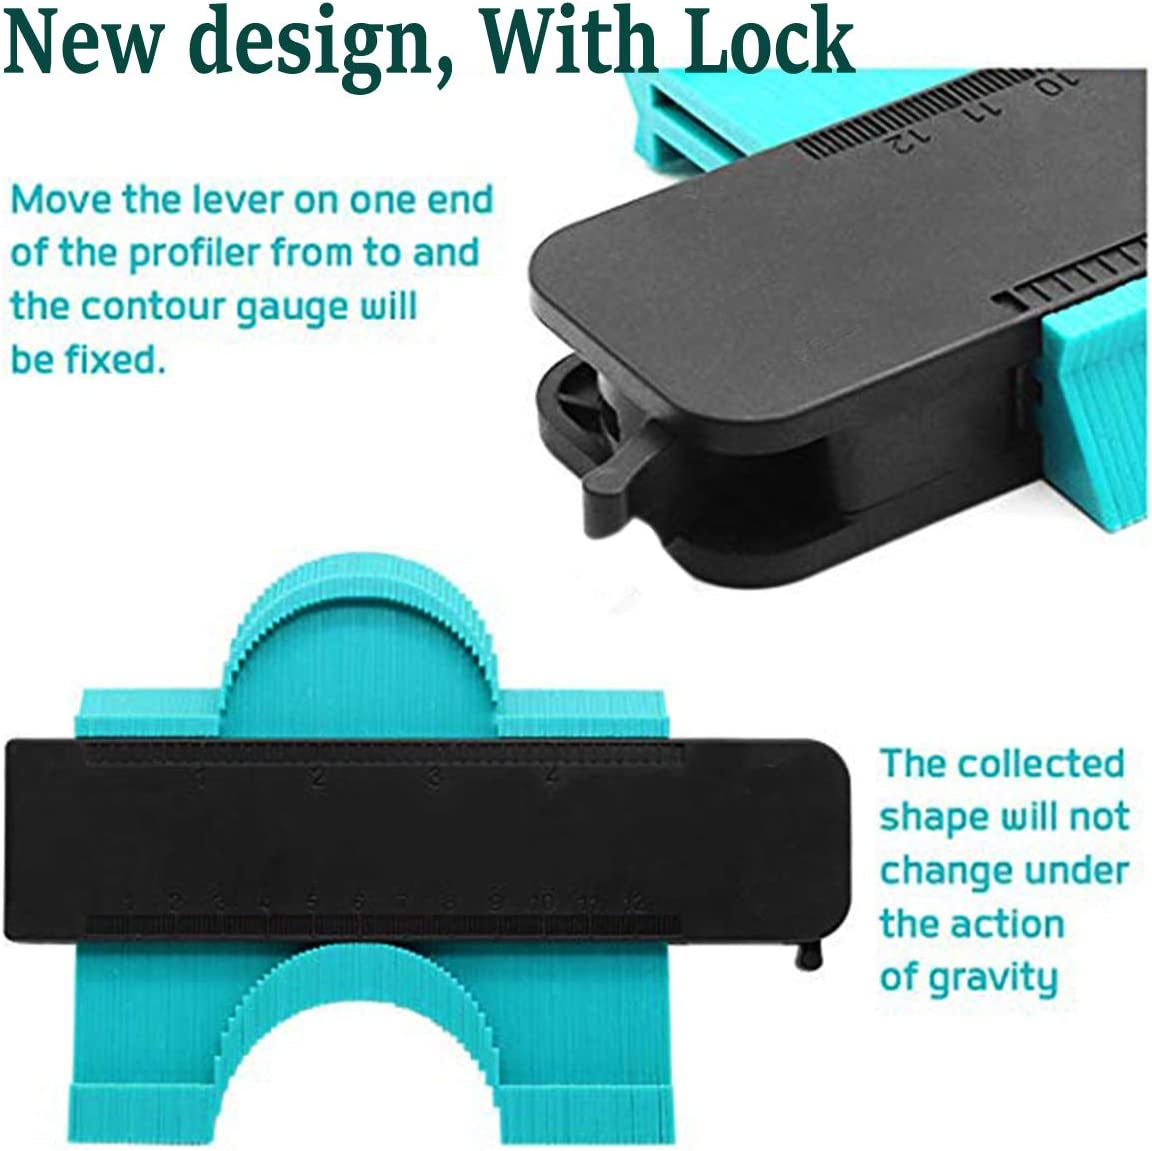 Blue 5inch 1 Pieces Contour Gauge 5 with Lock Duplication Gauge Profile Copy Tool Shape Measuring for Corners and Contoured